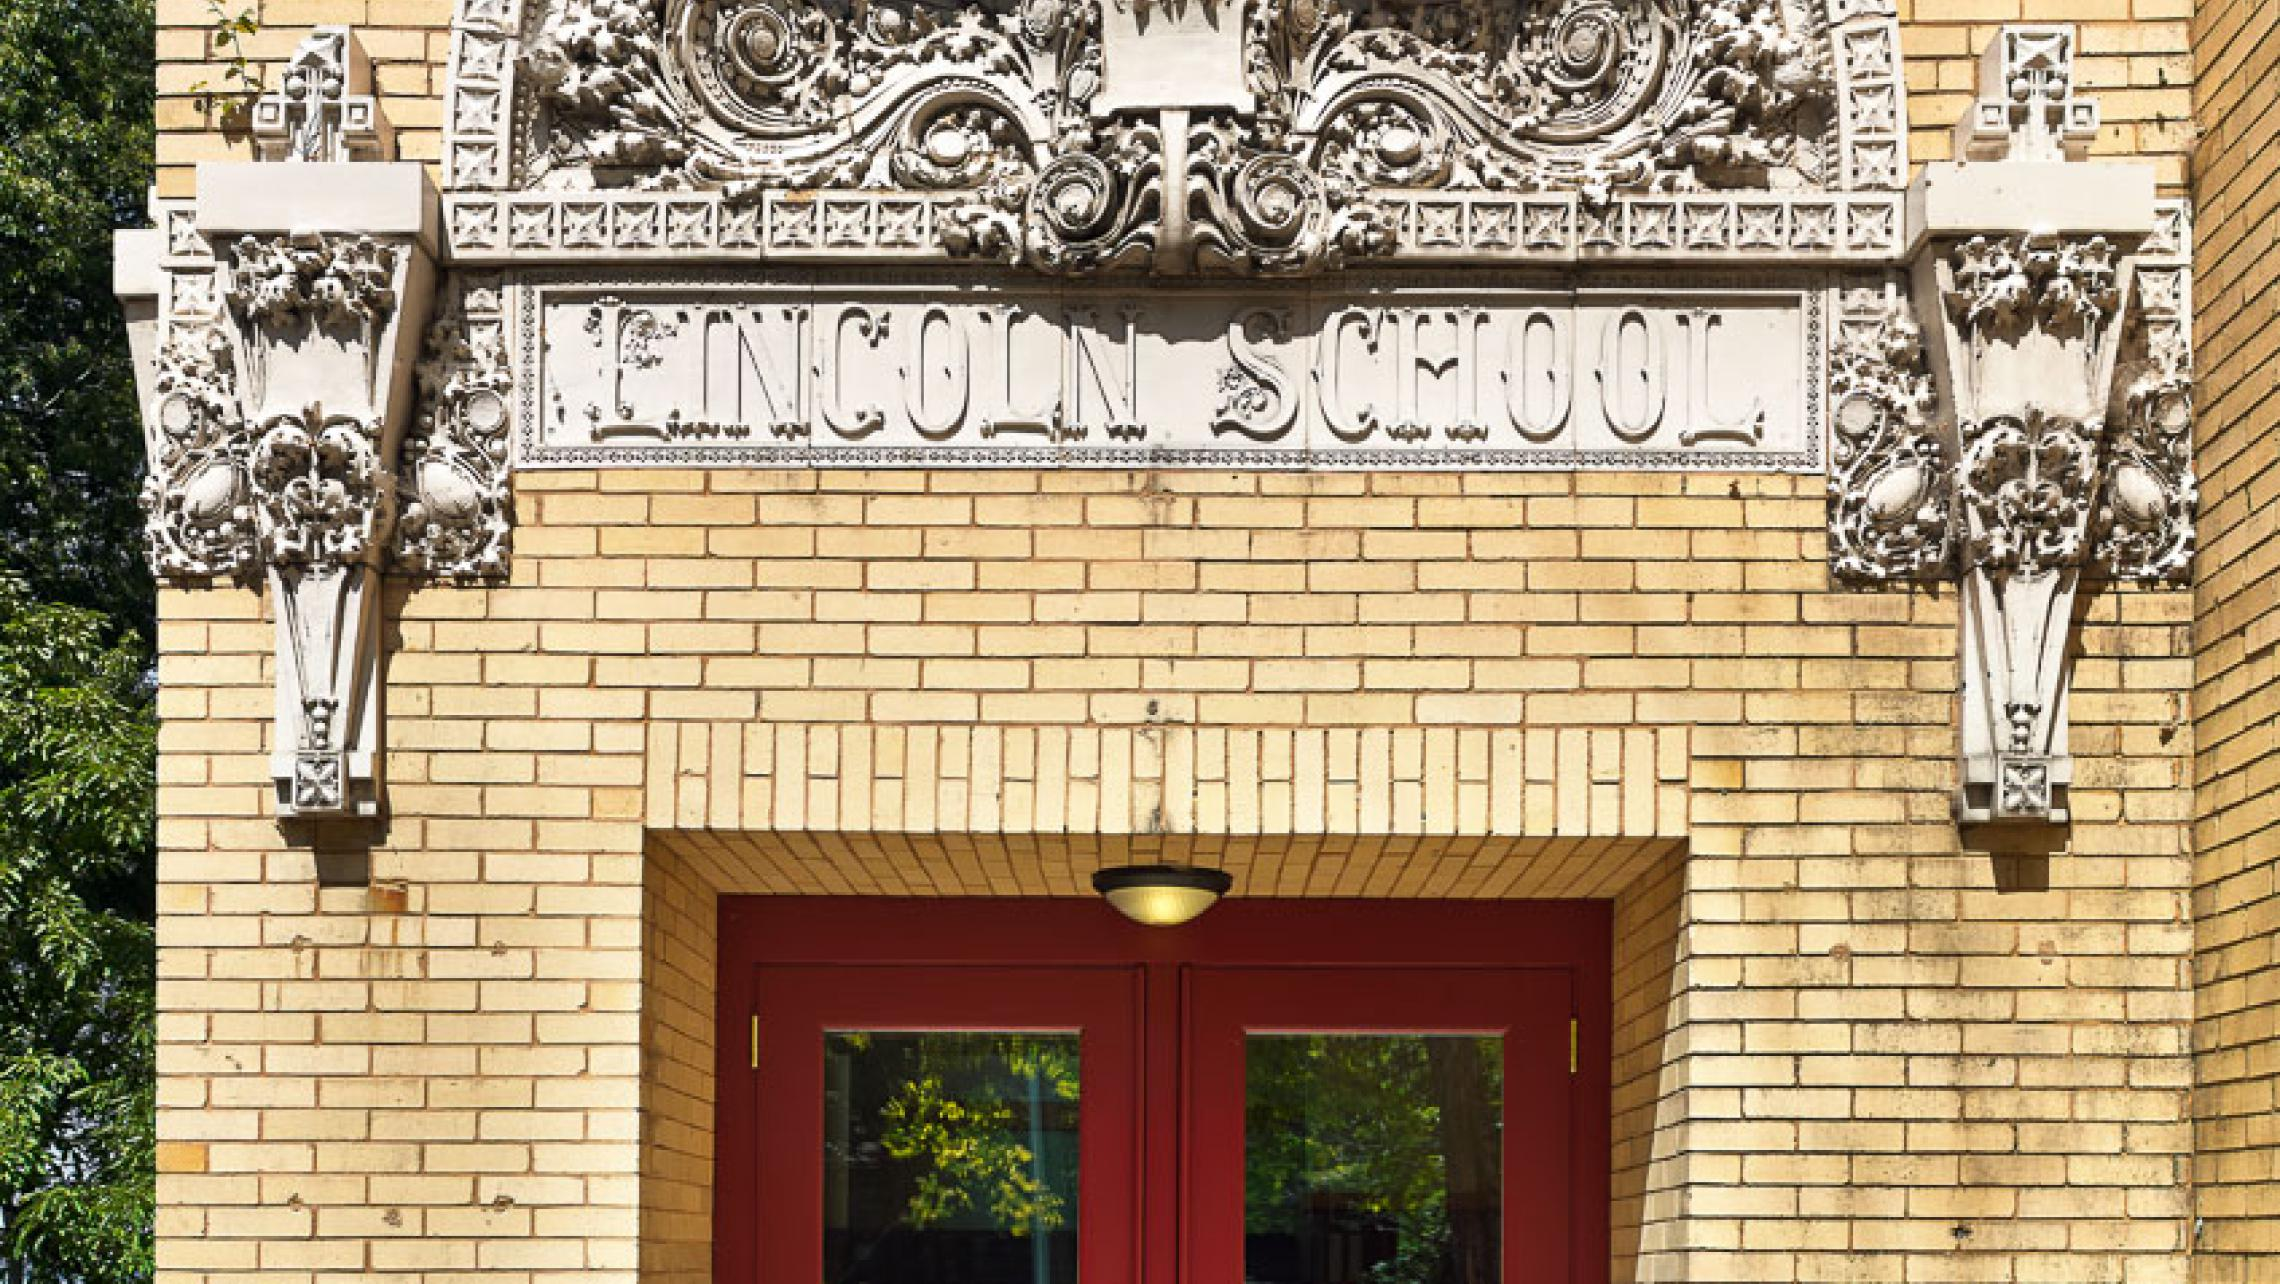 ULI Lincoln School Apartments, Historic Entrance